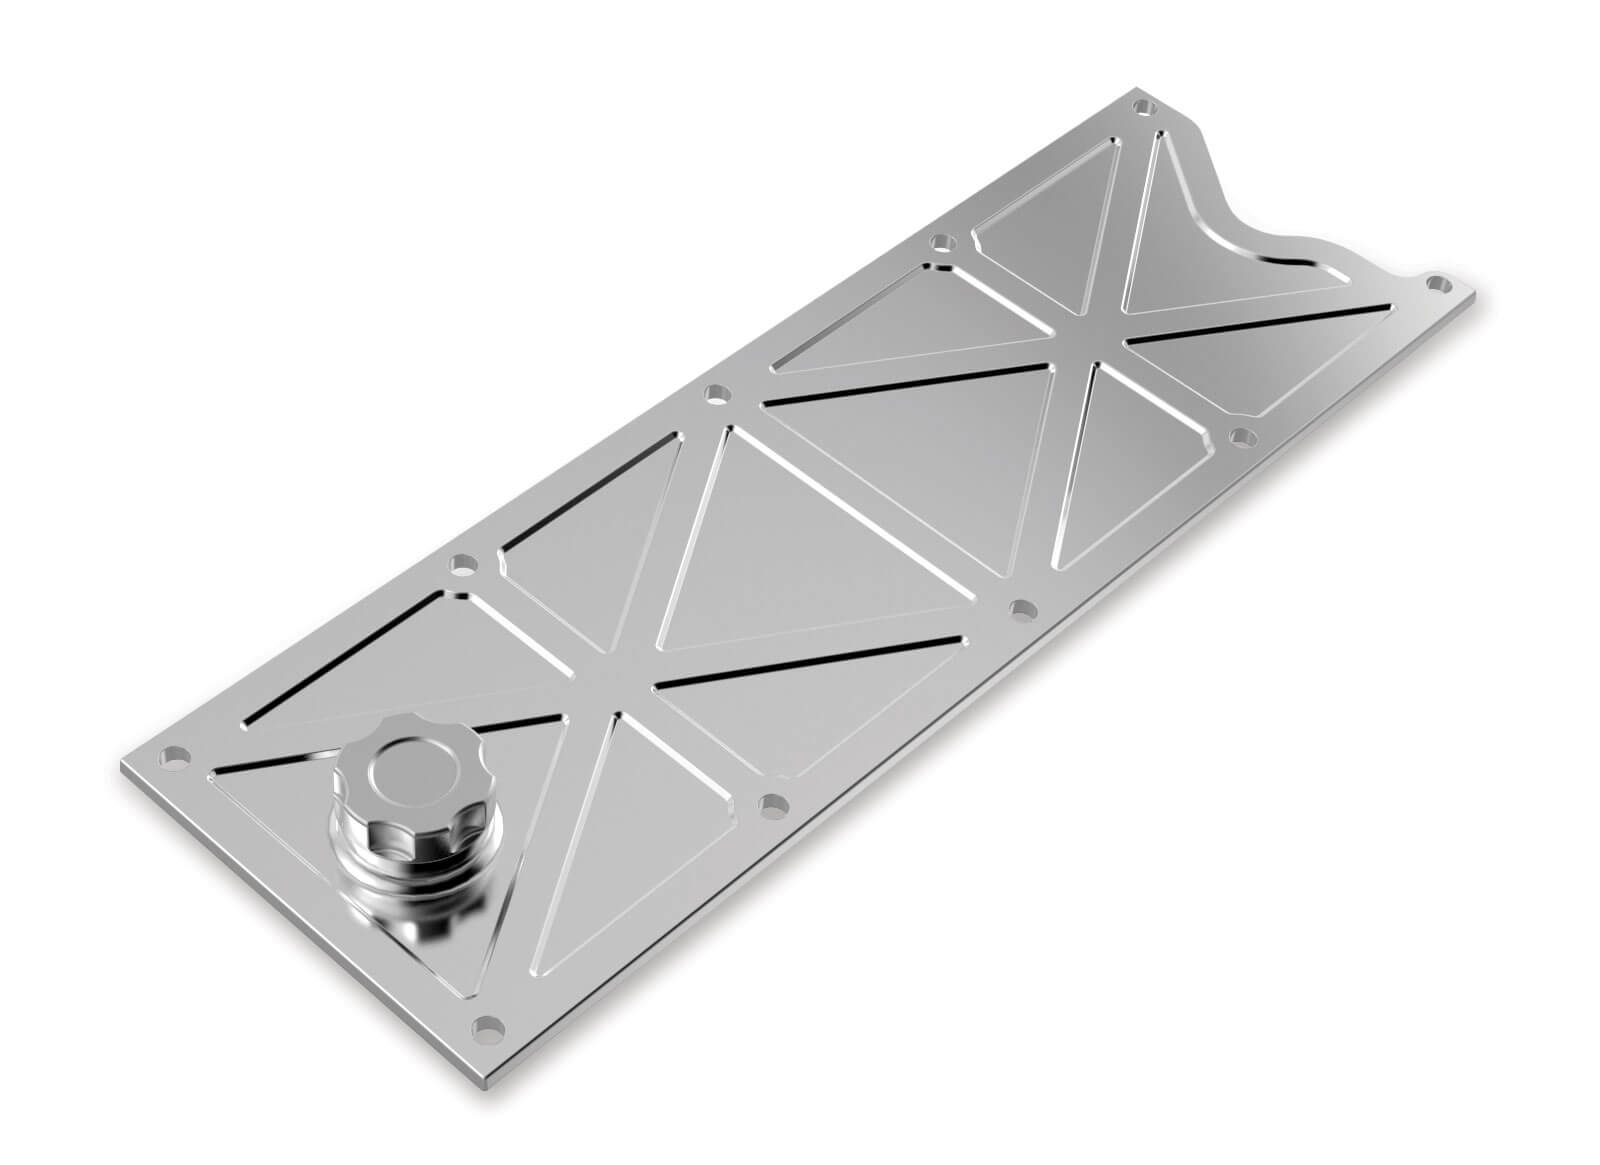 Holley LS1/LS6 Valley Cover with Oil Fill - Polished Billet